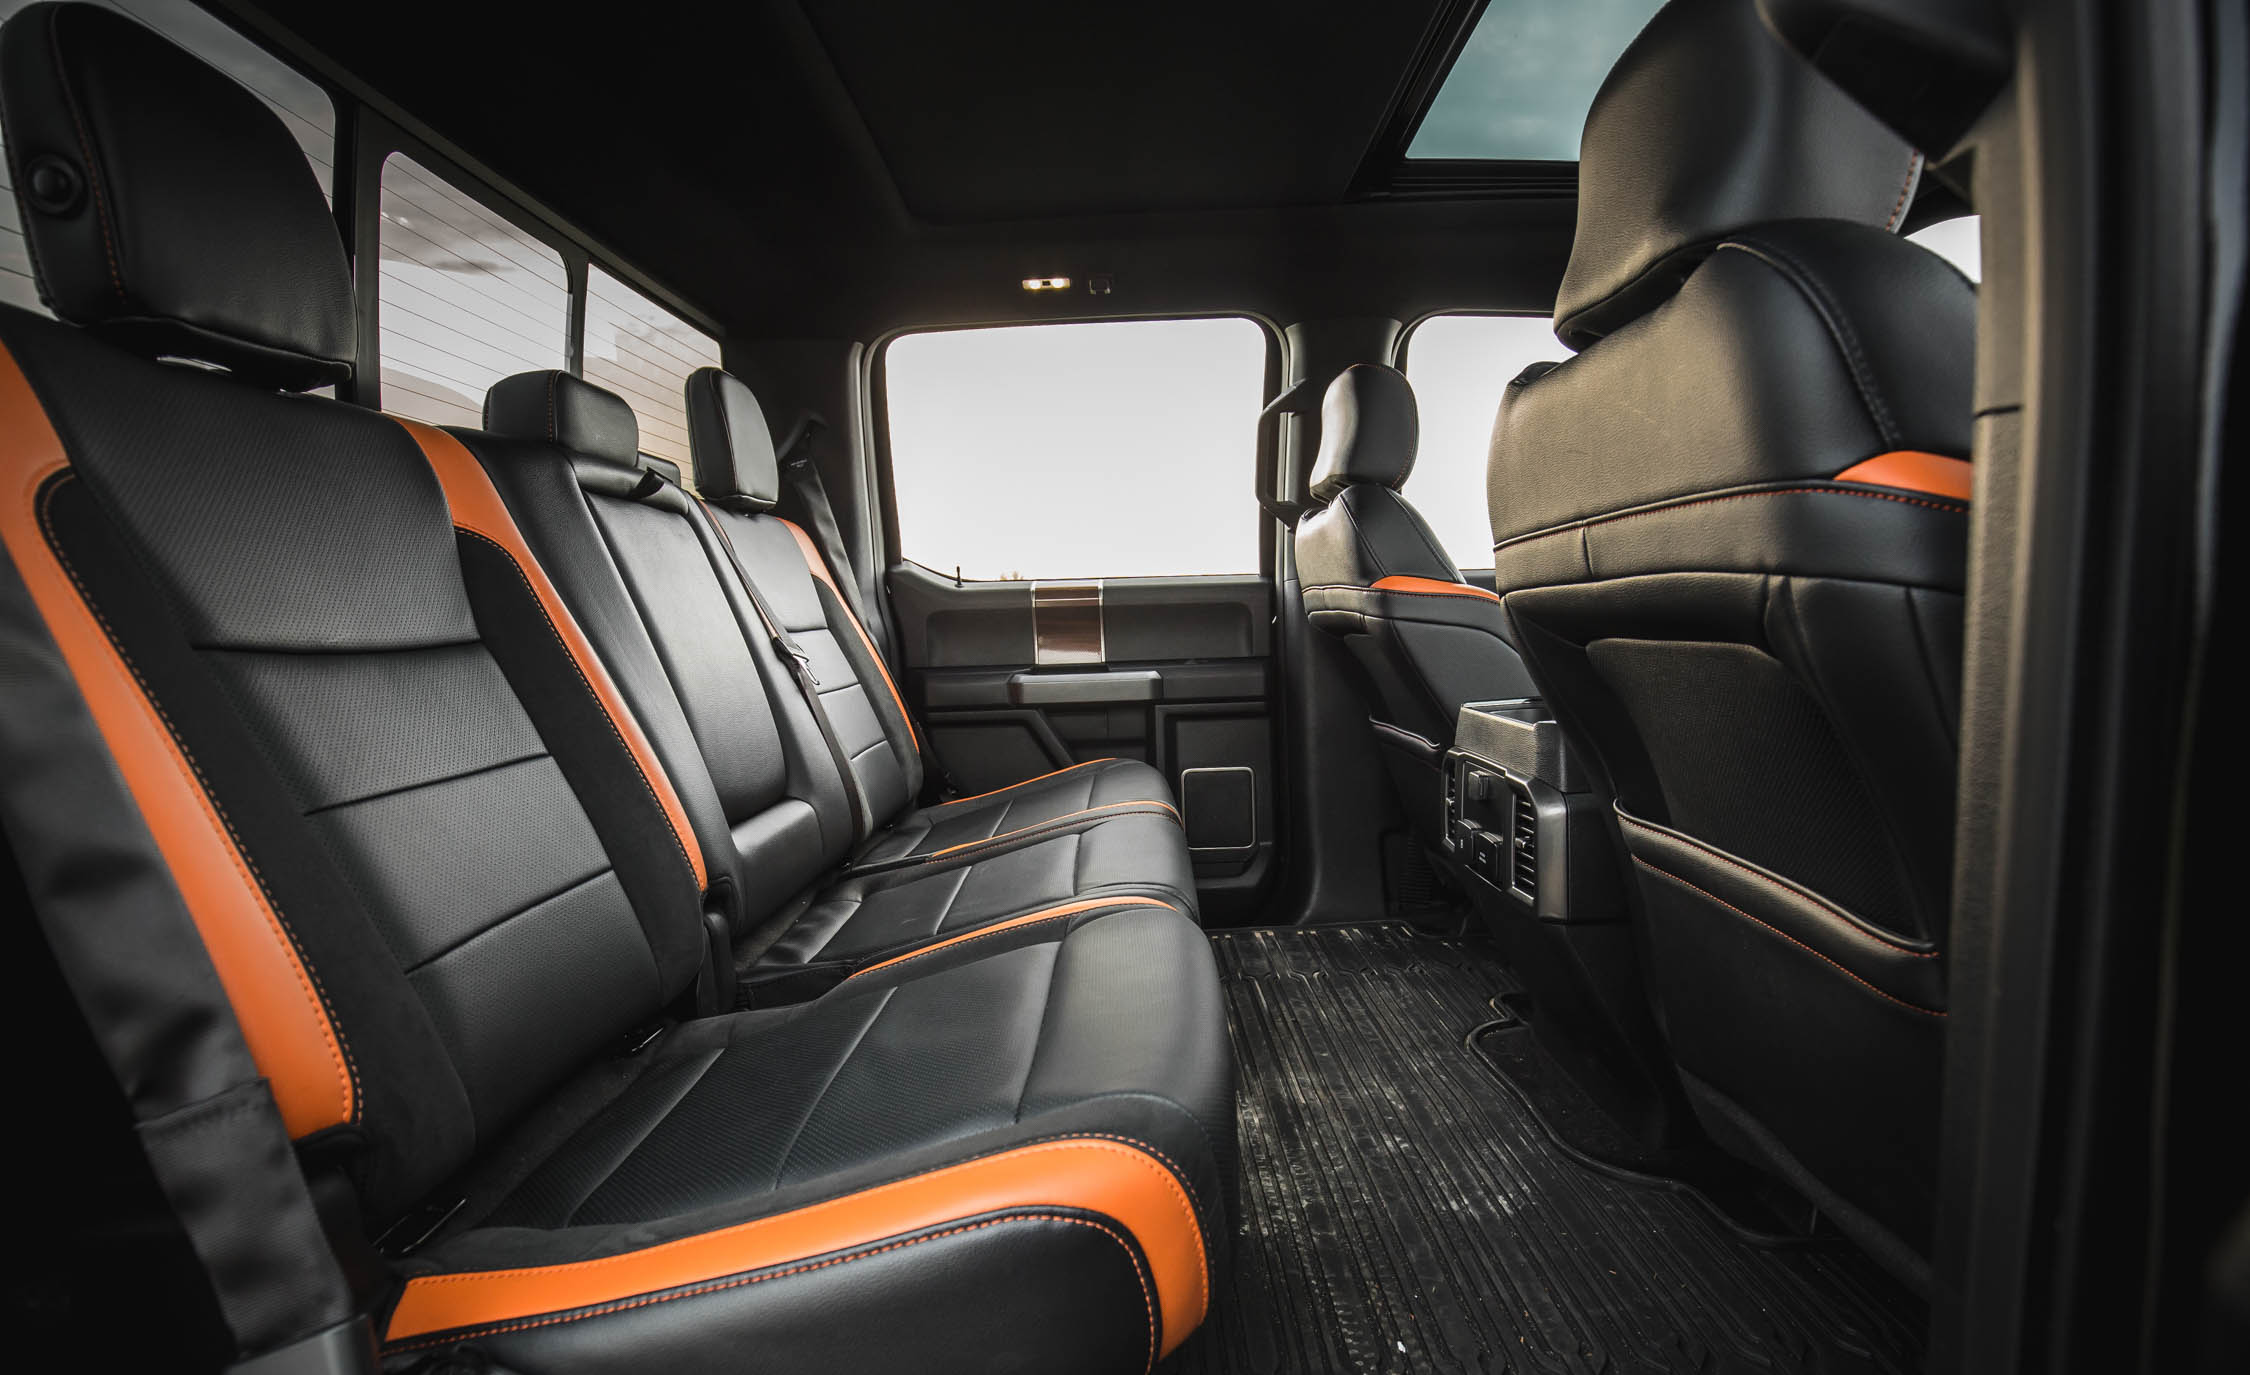 2017 Ford F 150 Raptor SuperCrew Interior Seats Rear (View 14 of 47)